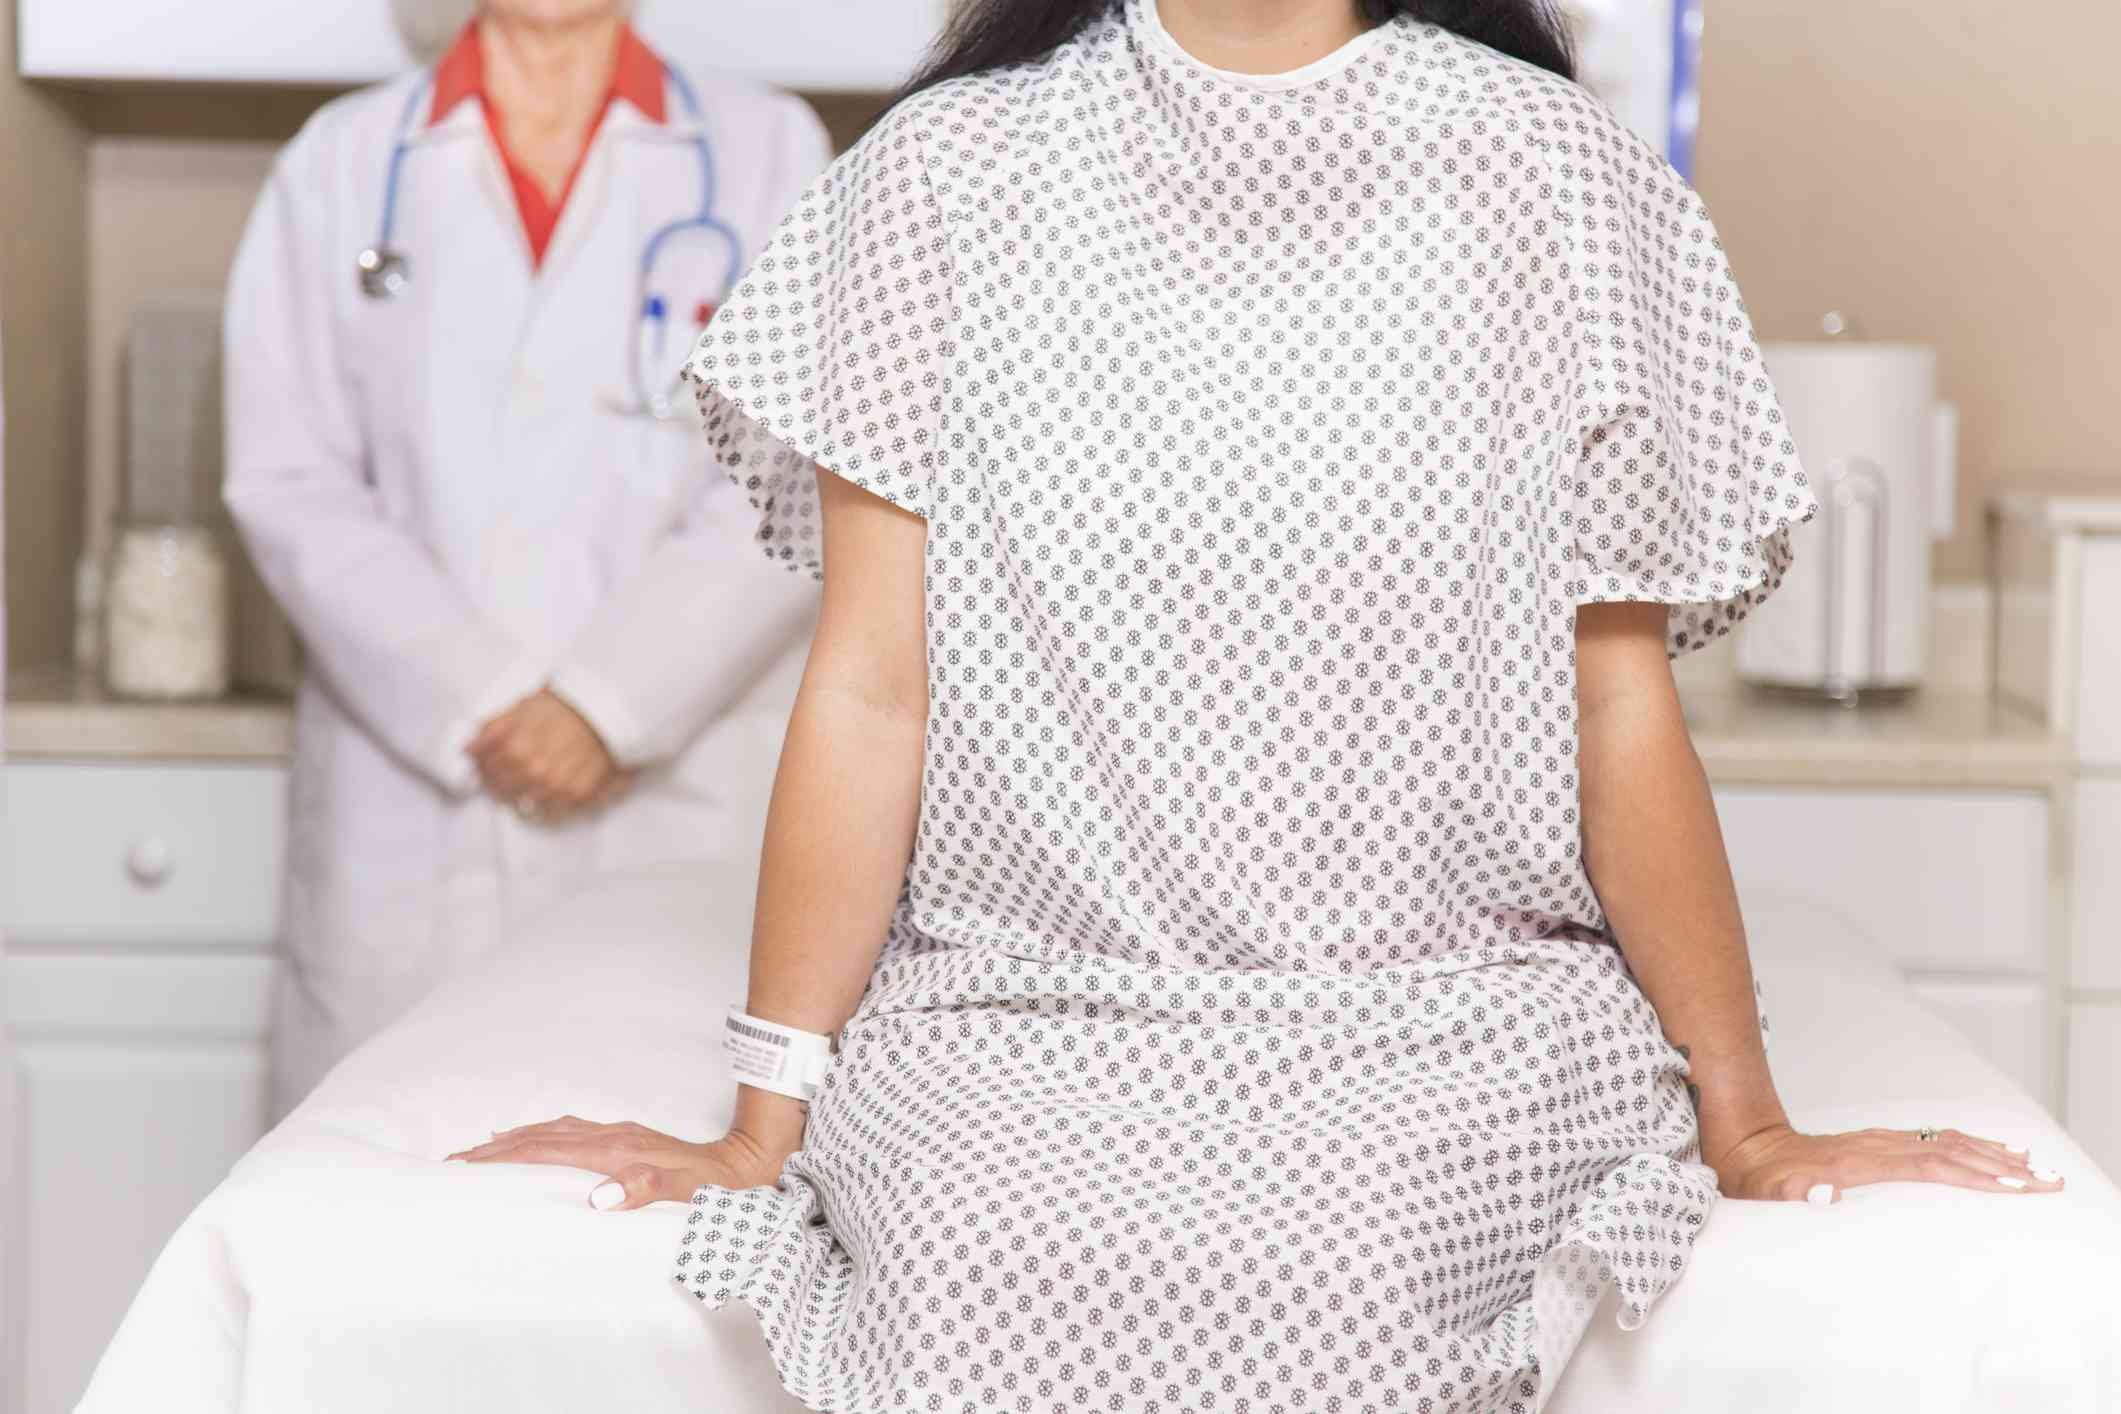 how to prepare for a mastectomy